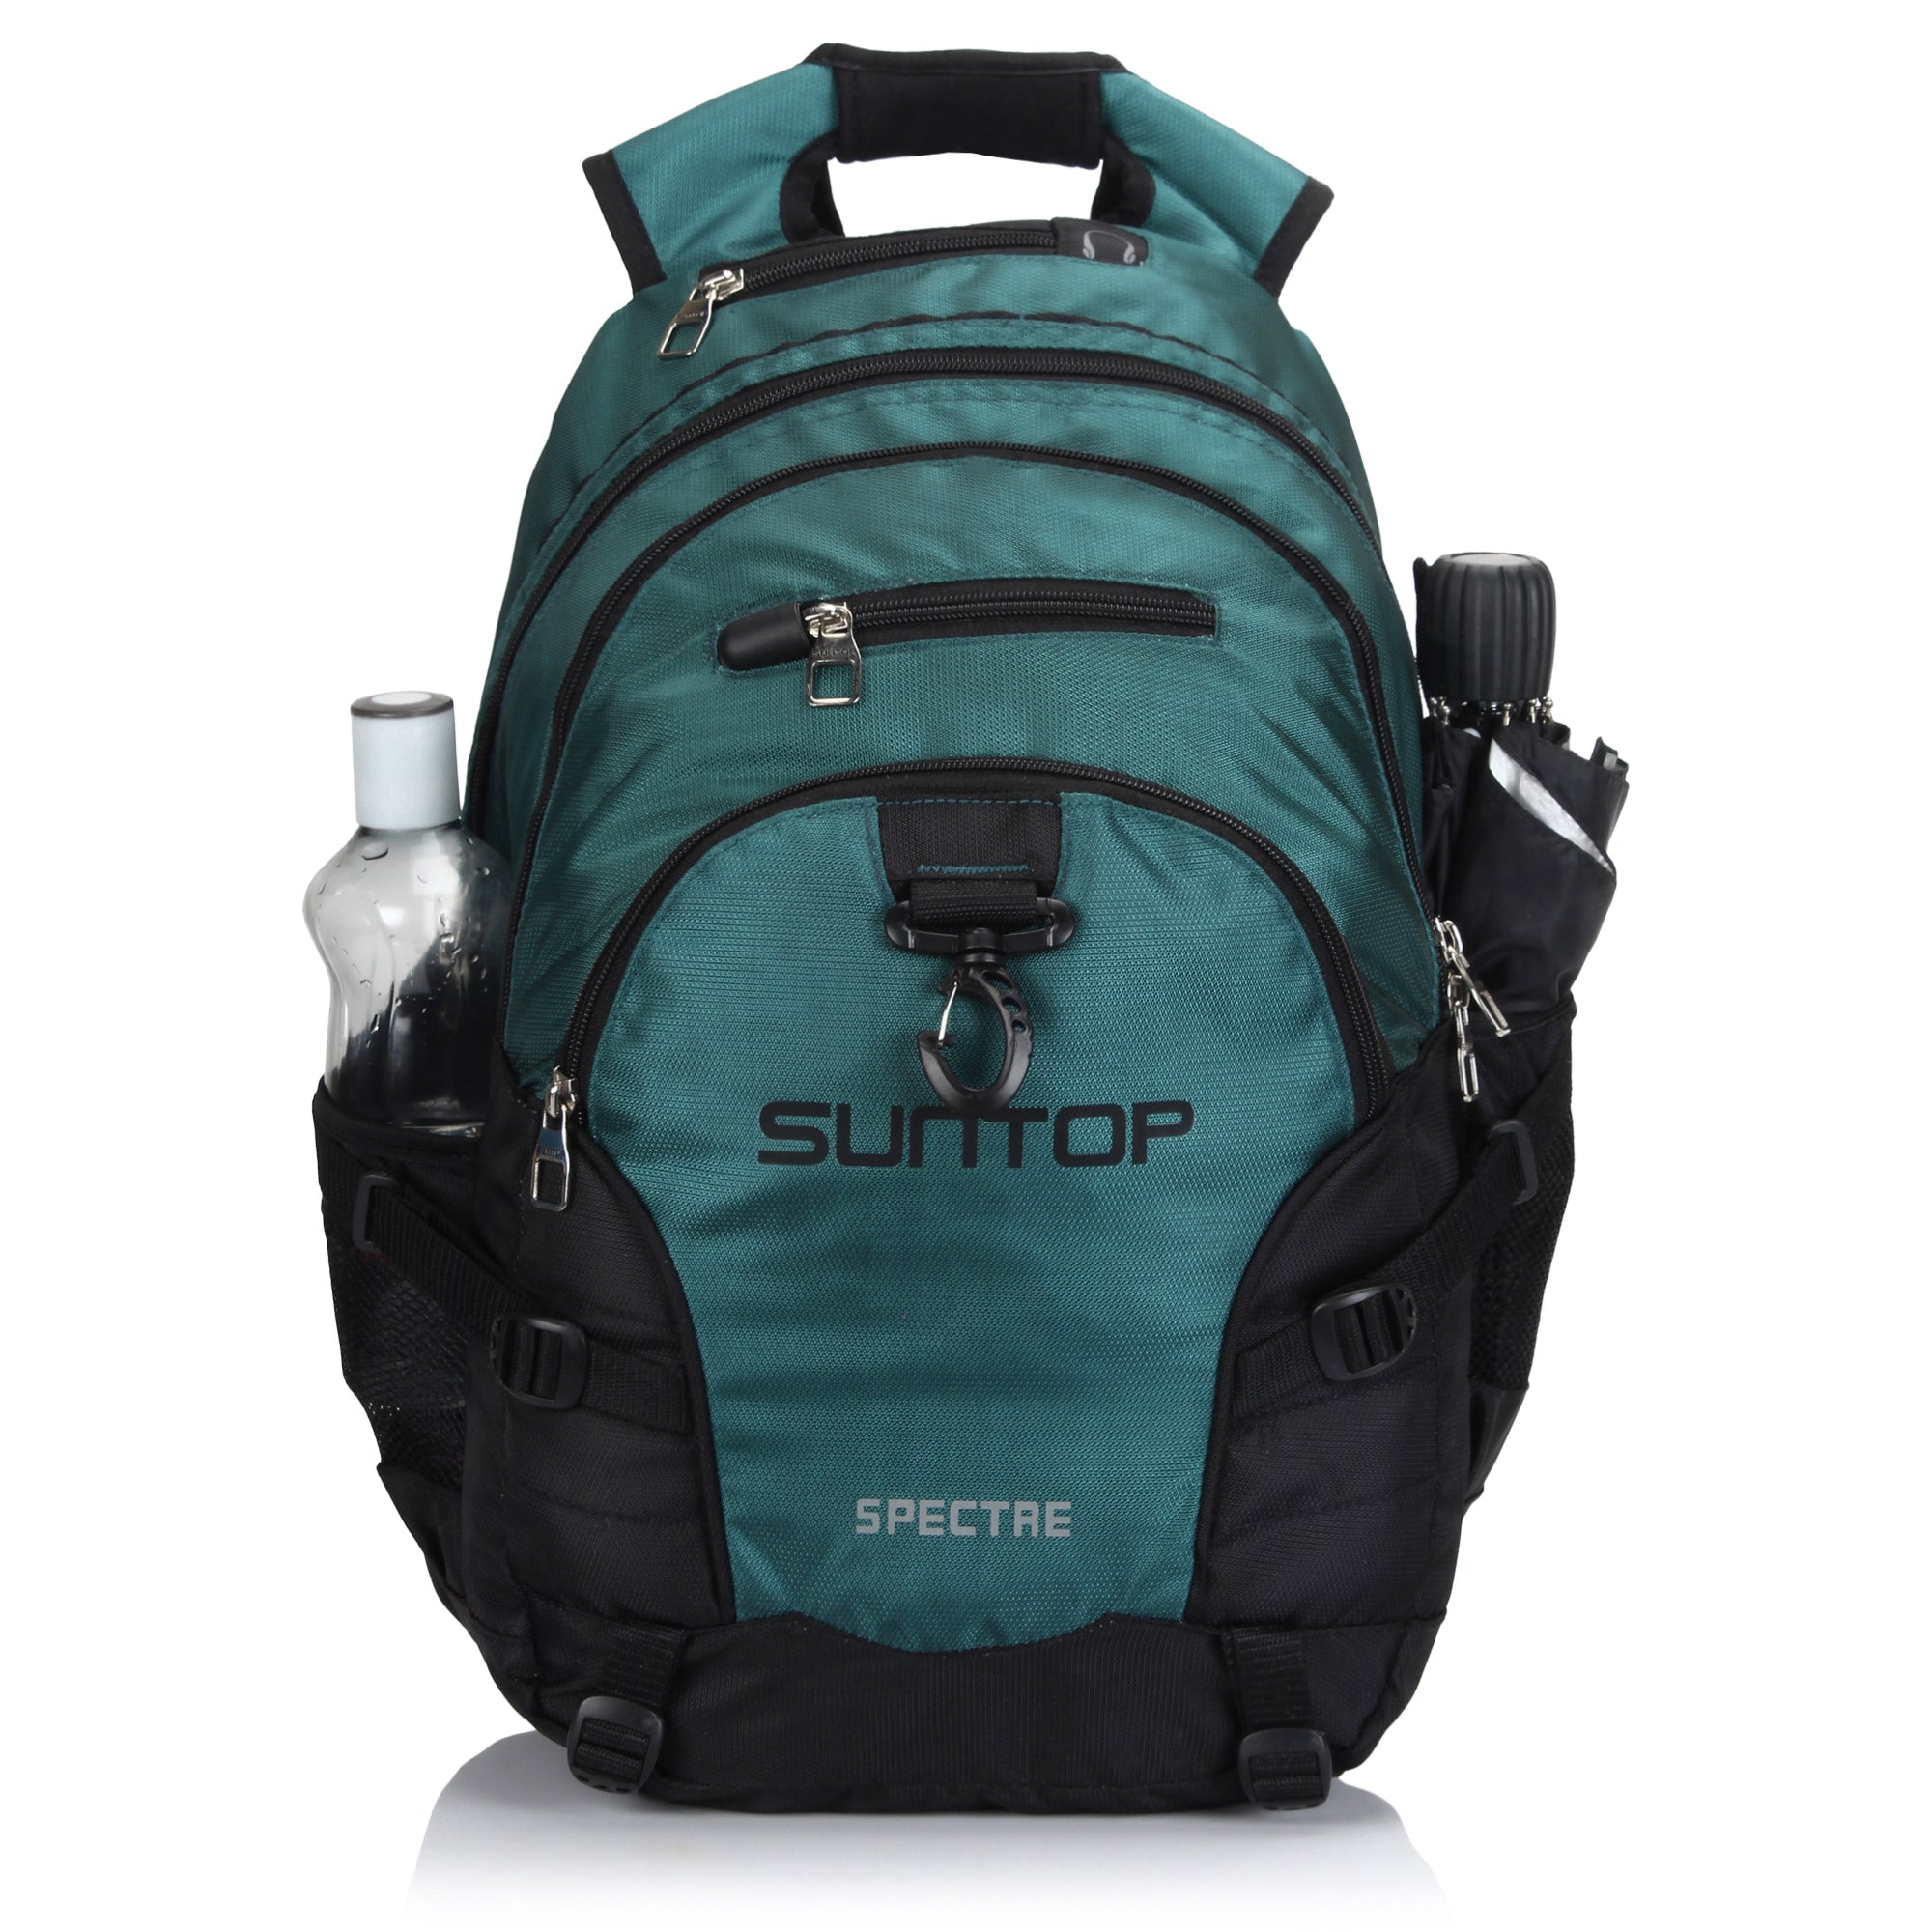 Suntop Spectre Water Resistant Backpack Bag (Black and Blue)